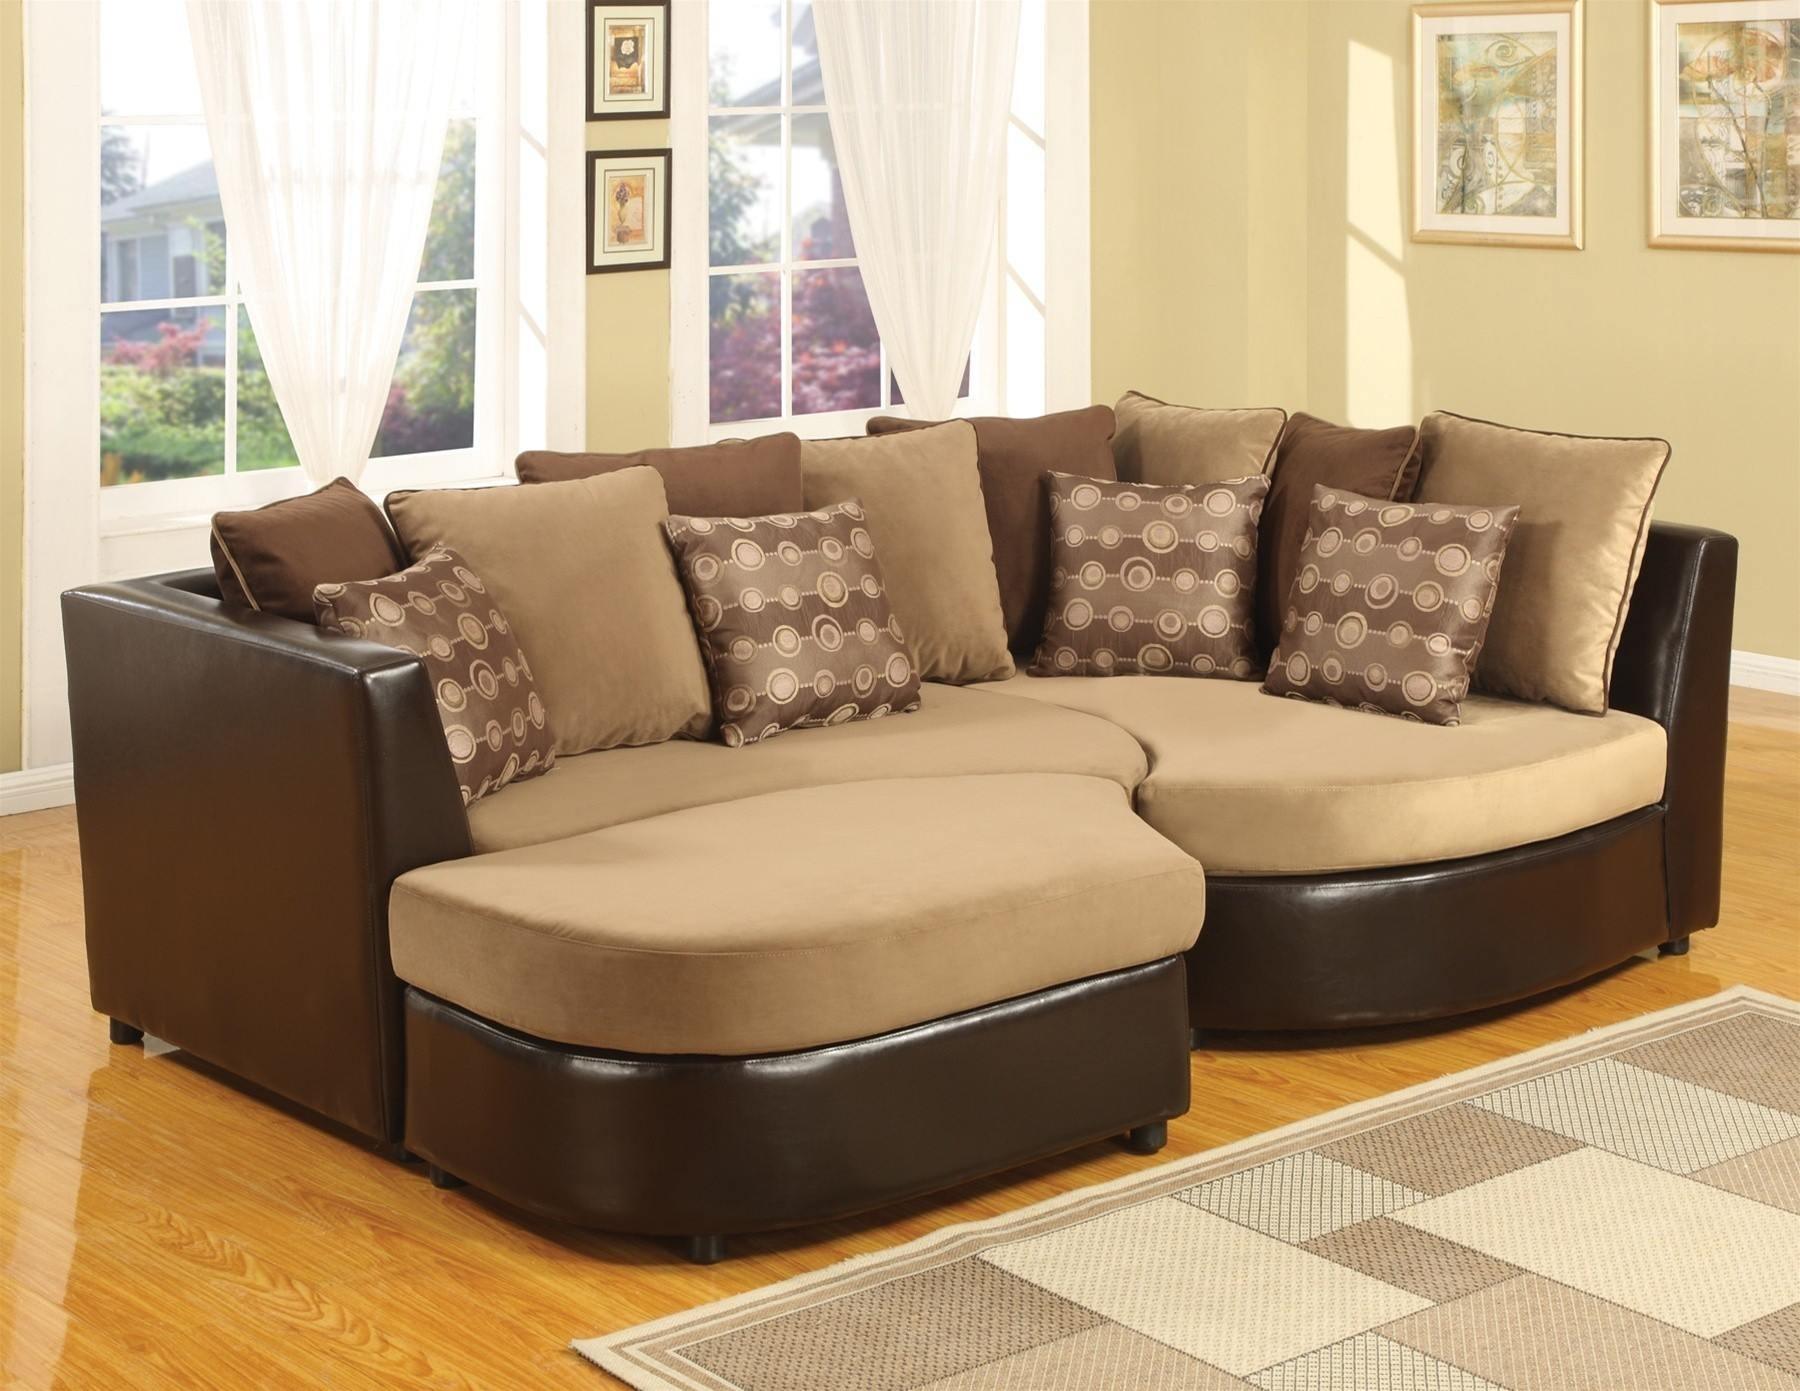 Sofa : Linen Sectional Sofa The Bay Sectional Sofa Five Piece Throughout The Bay Sectional Sofas (View 6 of 10)